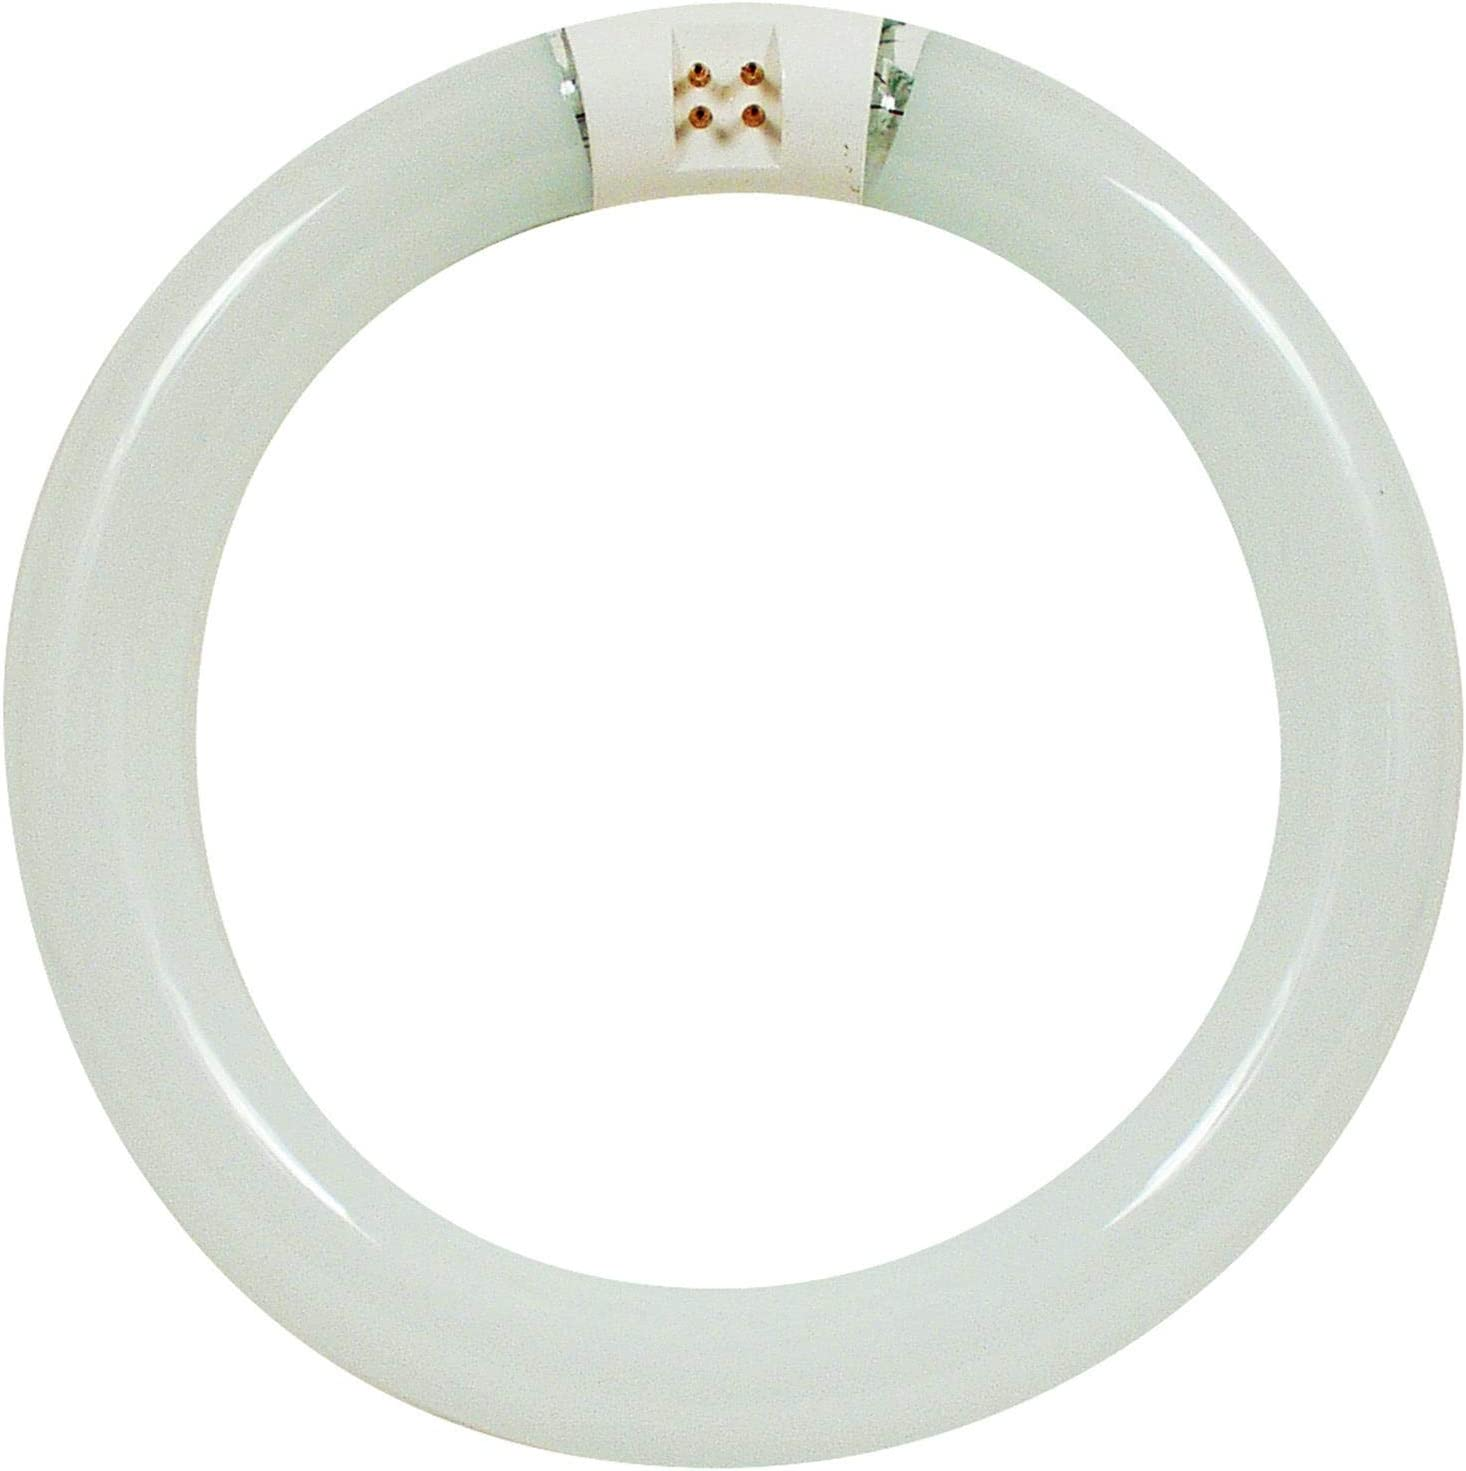 FEIT ELECTRIC FC30 fluorescent bulb, product specific